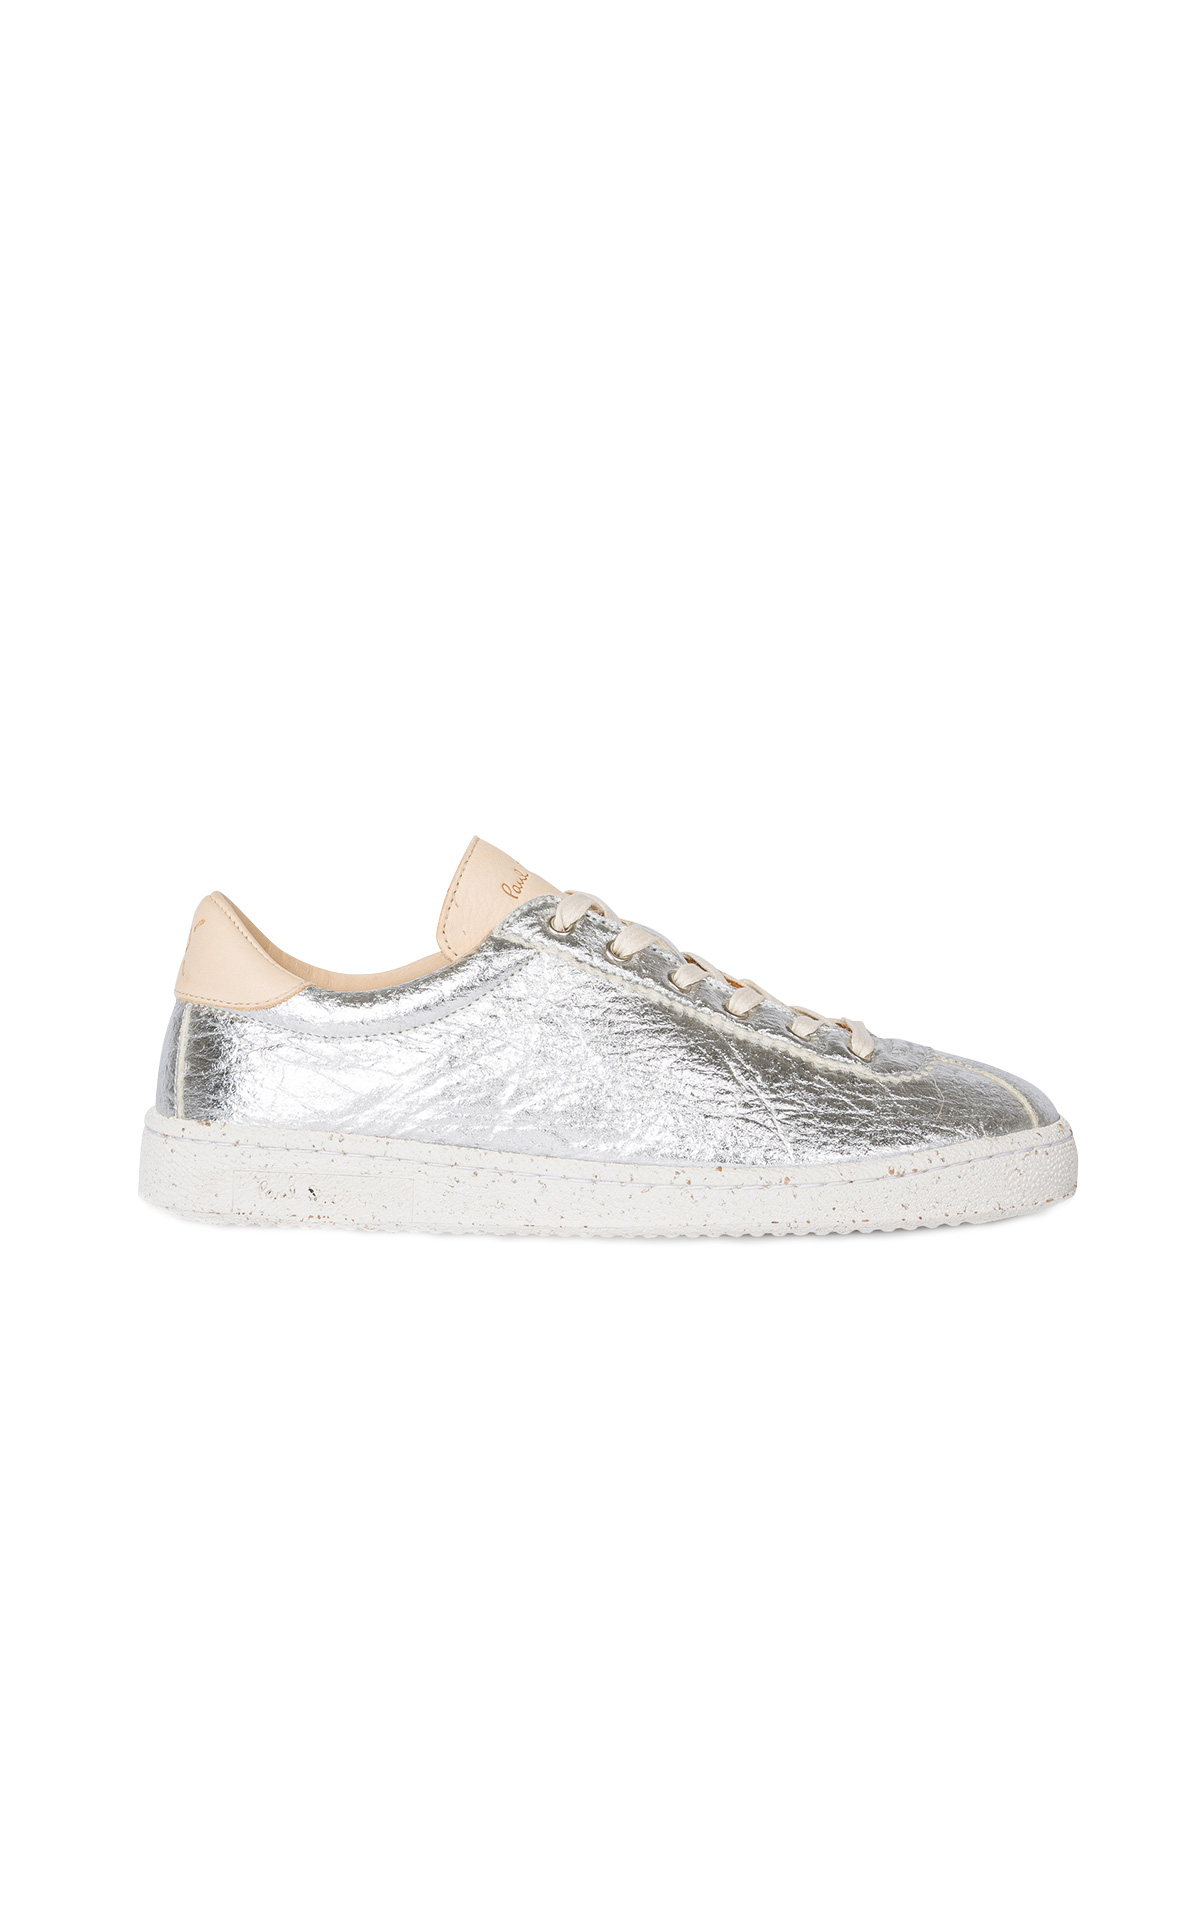 La Vallée Village Paul Smith Baskets Dusty Silver